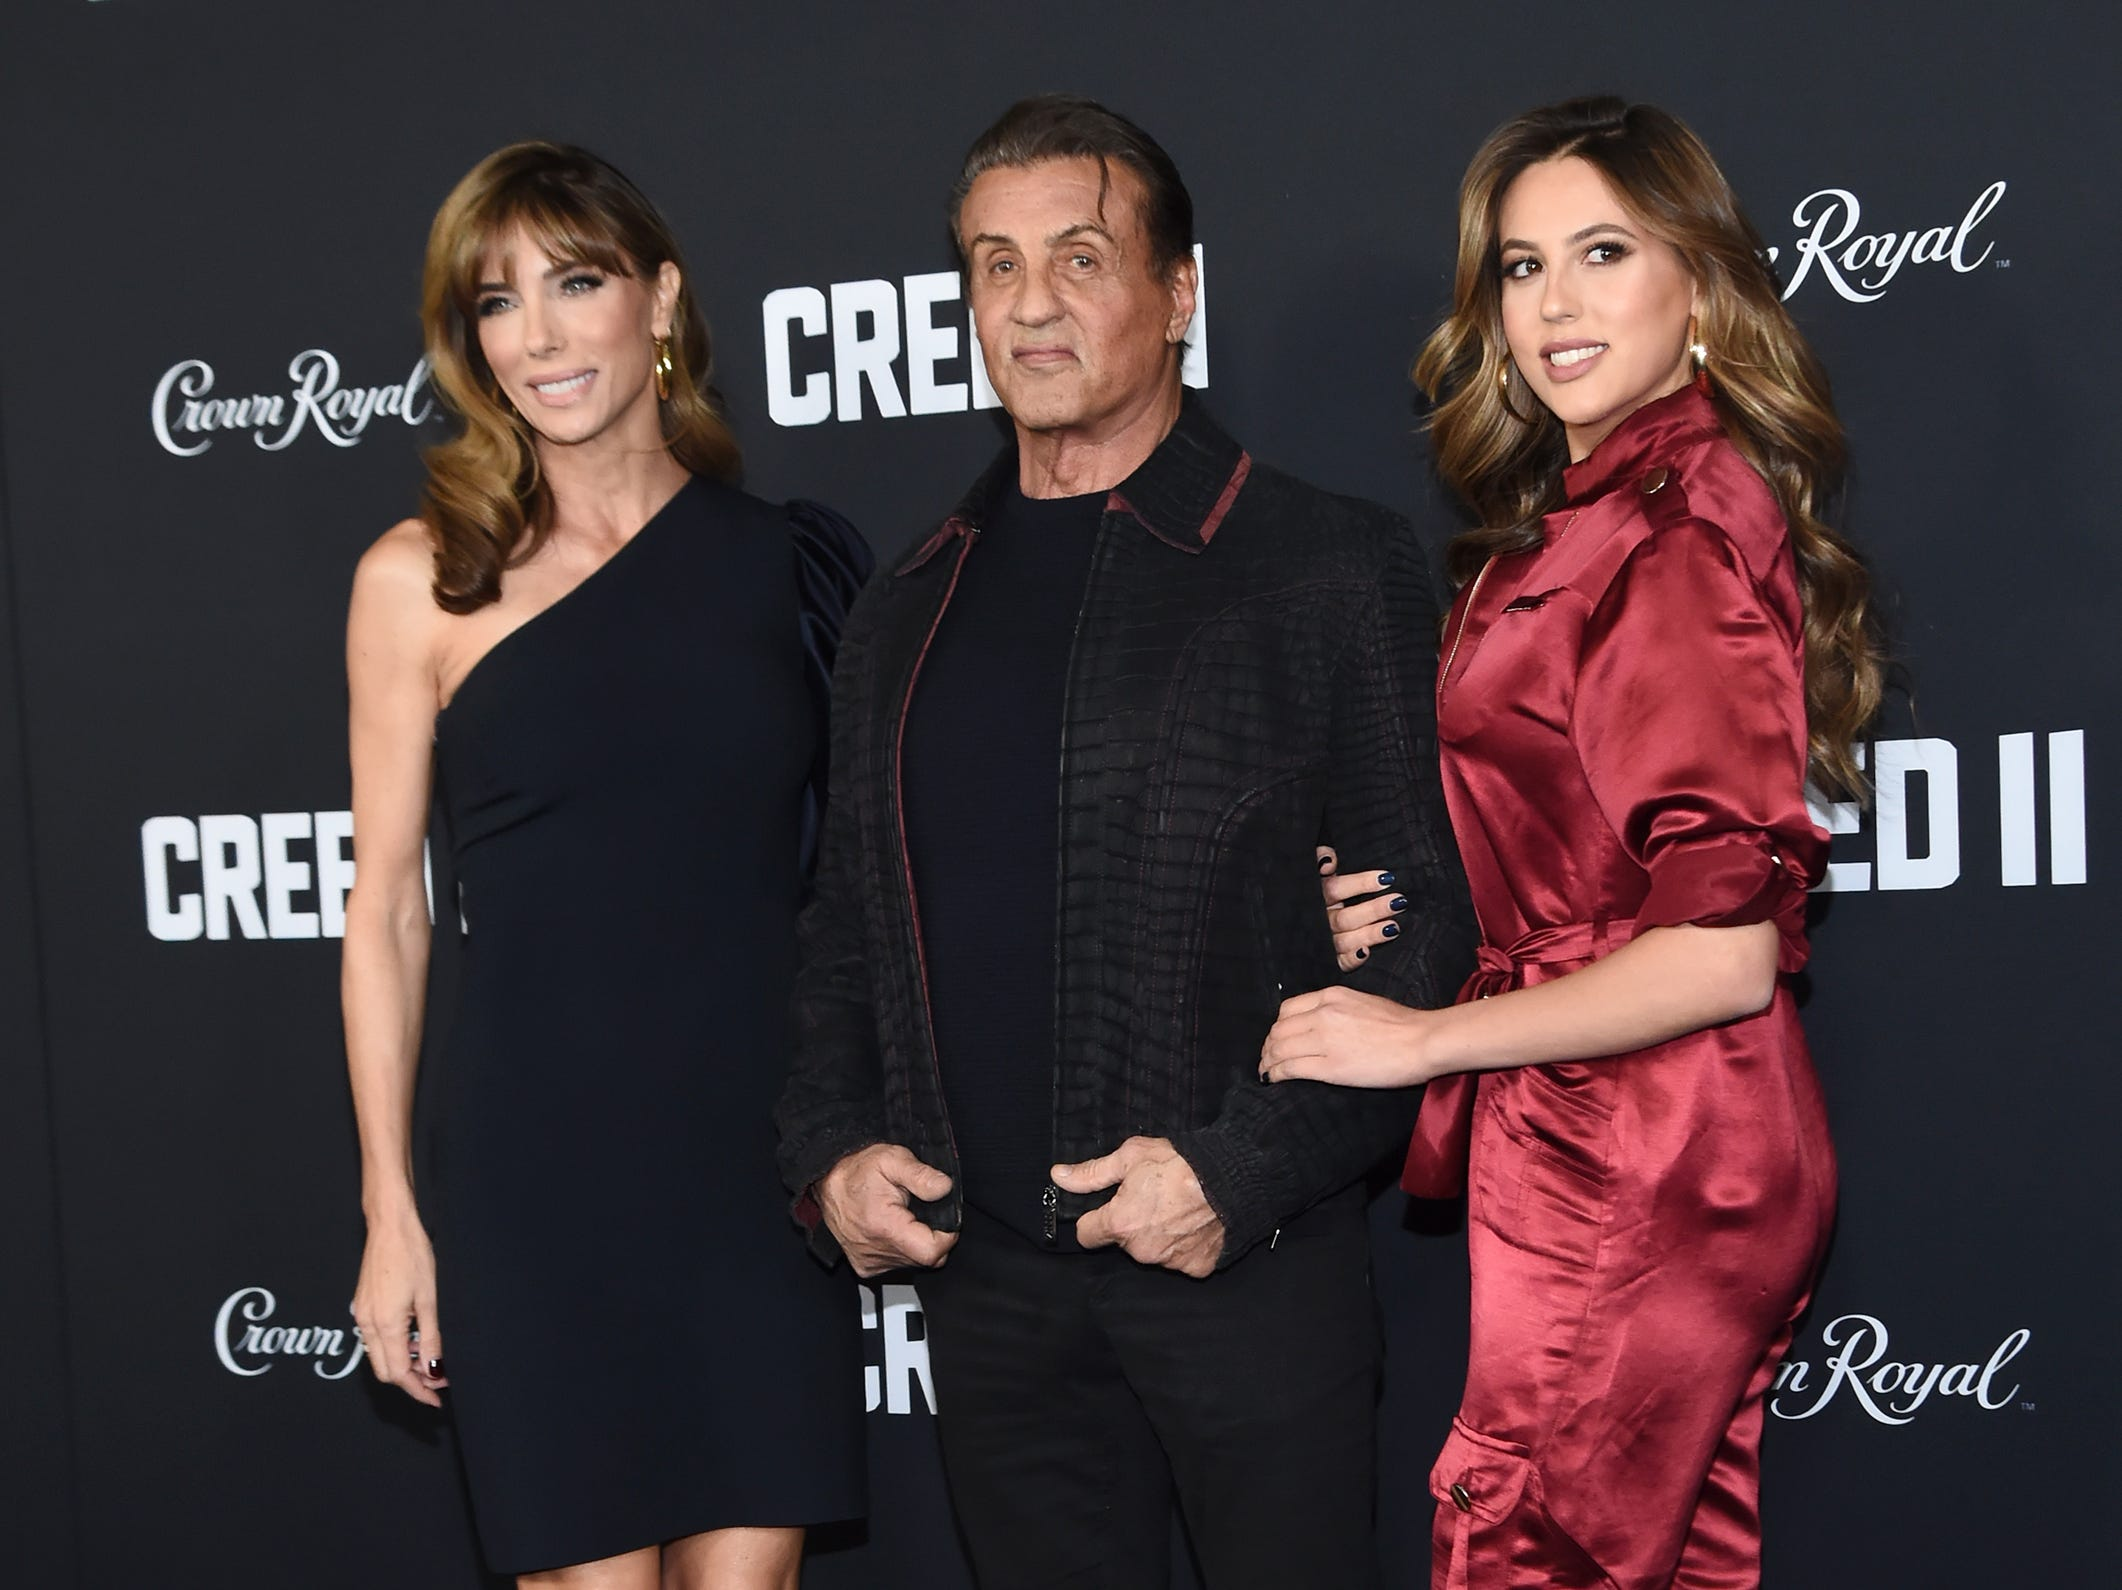 NEW YORK, NEW YORK - NOVEMBER 14: Jennifer Flavin, Sylvester Stallone and daughter Sophia Stallone attend the 'Creed II' New York Premiere at AMC Loews Lincoln Square on November 14, 2018 in New York City. (Photo by Daniel Zuchnik/WireImage) ORG XMIT: 775258752 ORIG FILE ID: 1067713010